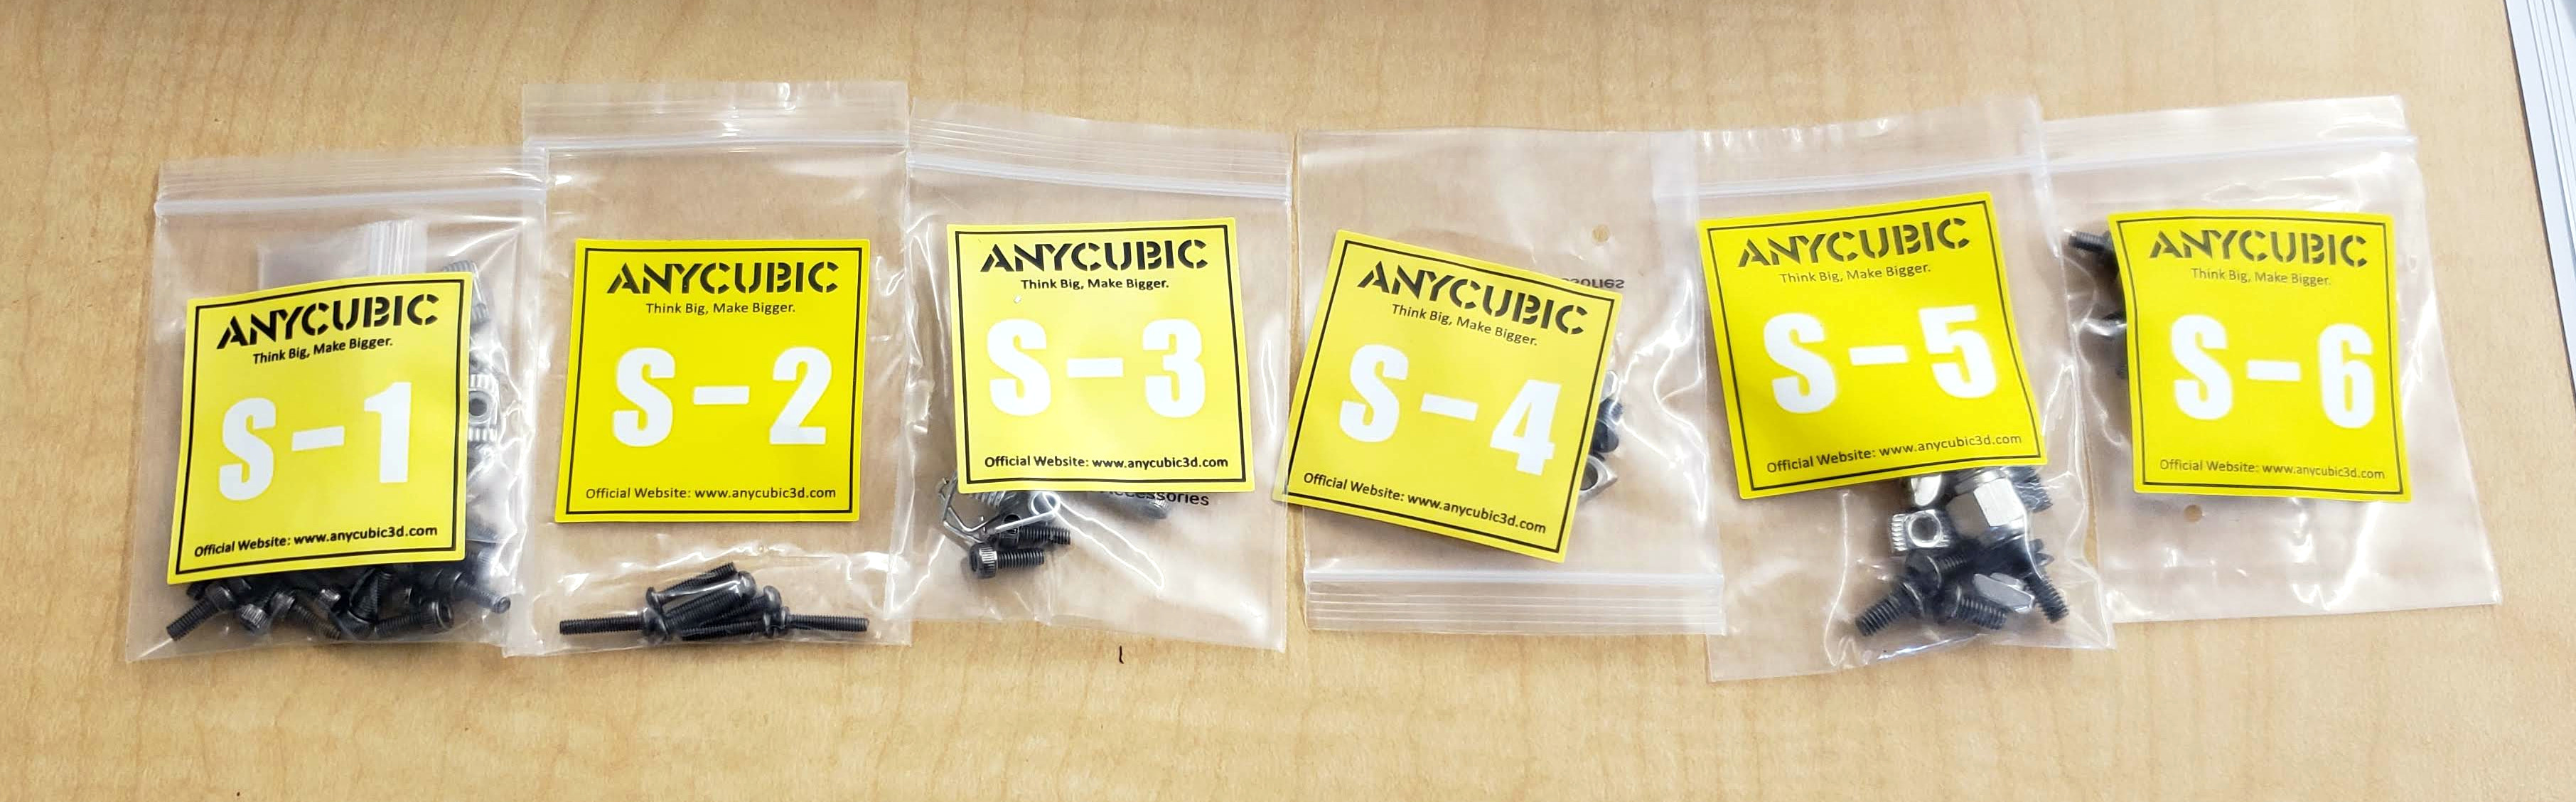 AnyCubic Kossel parts bags